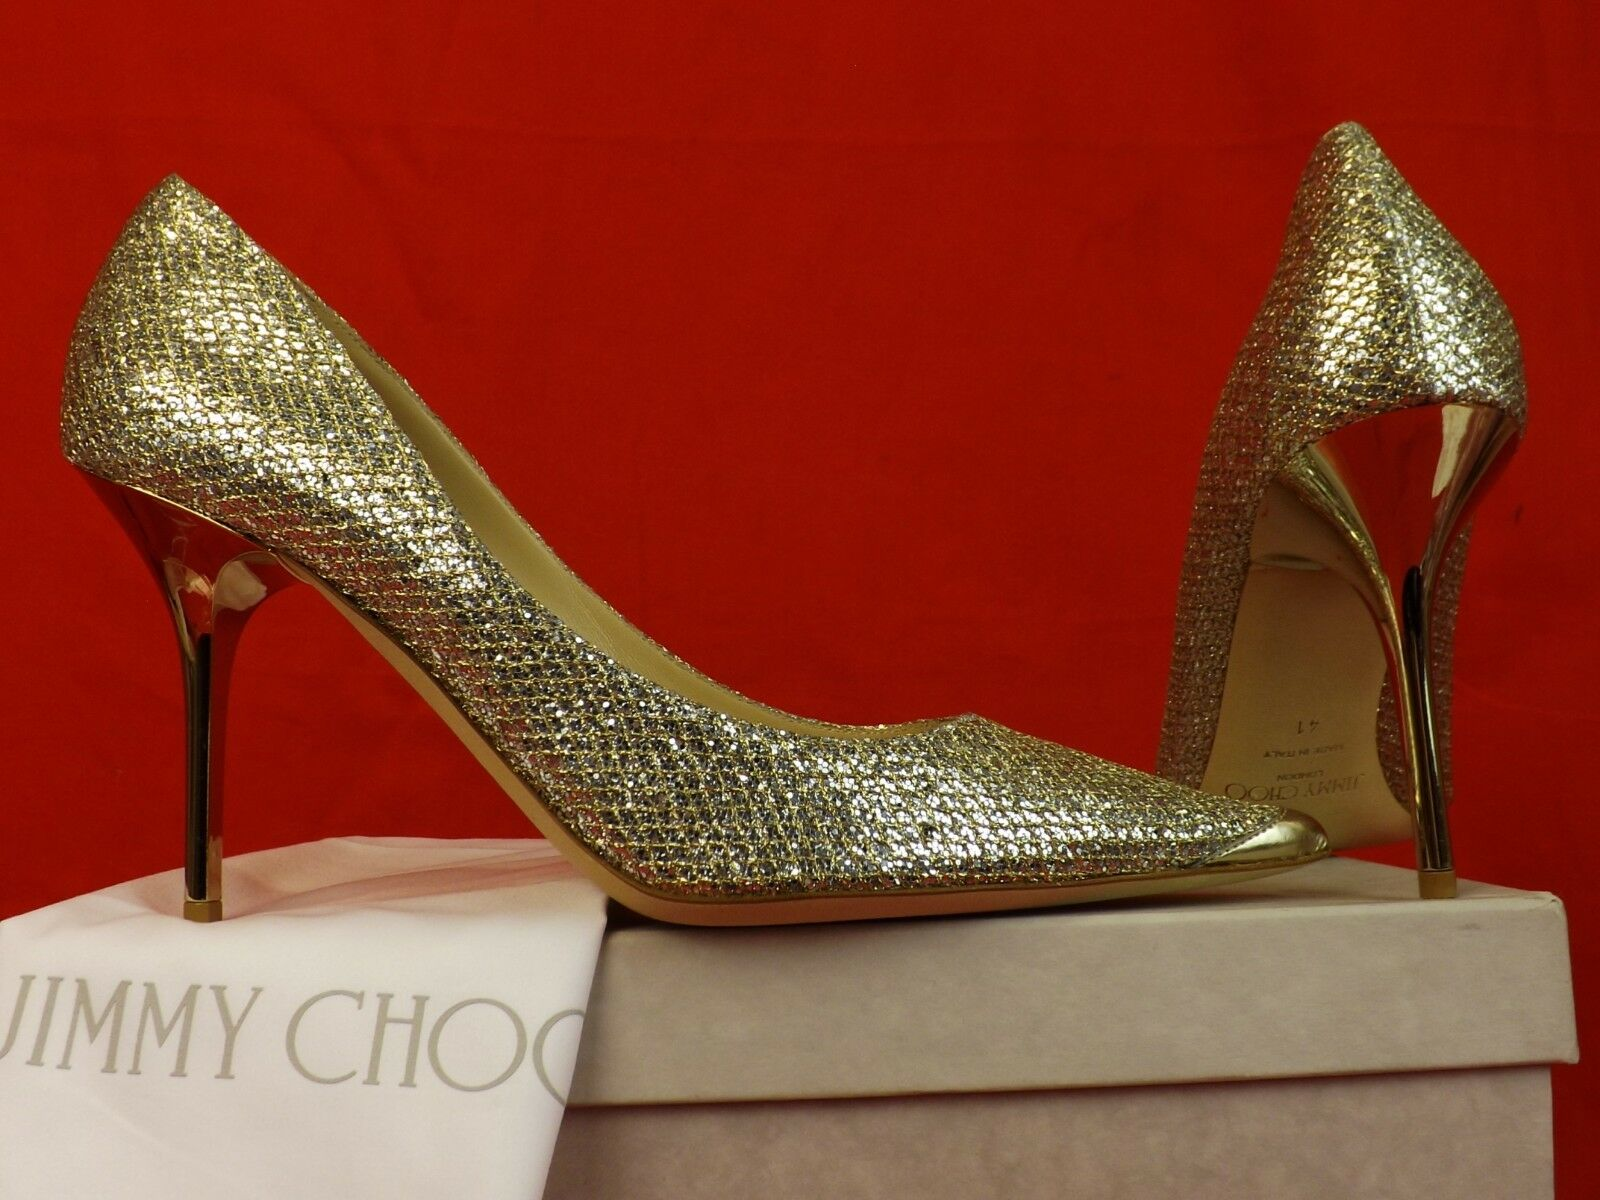 cfbca1fa81b0 Jimmy Choo Agnes Champagne Glitter Fabric Pointy Toe Mirror Heel PUMPS 41  for sale online